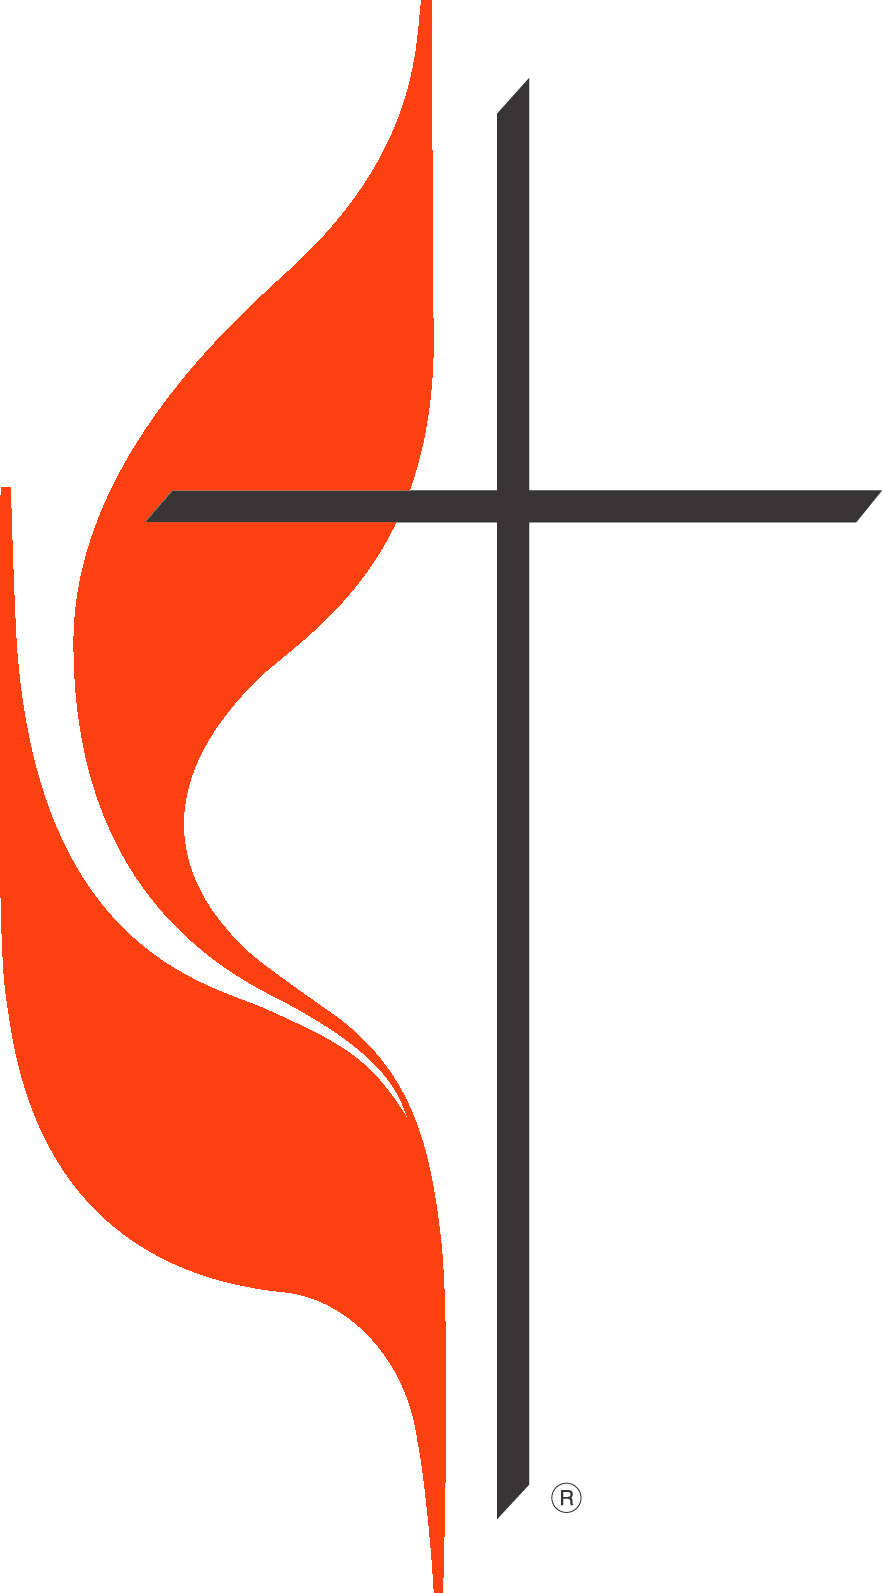 The Cross and Flame is a registered trademark and the use is supervised by the General Council on Finance and Administration of The United Methodist Church. Permission to use the Cross and Flame must be obtained from the General Council on Finance and Administration of The United Methodist Church